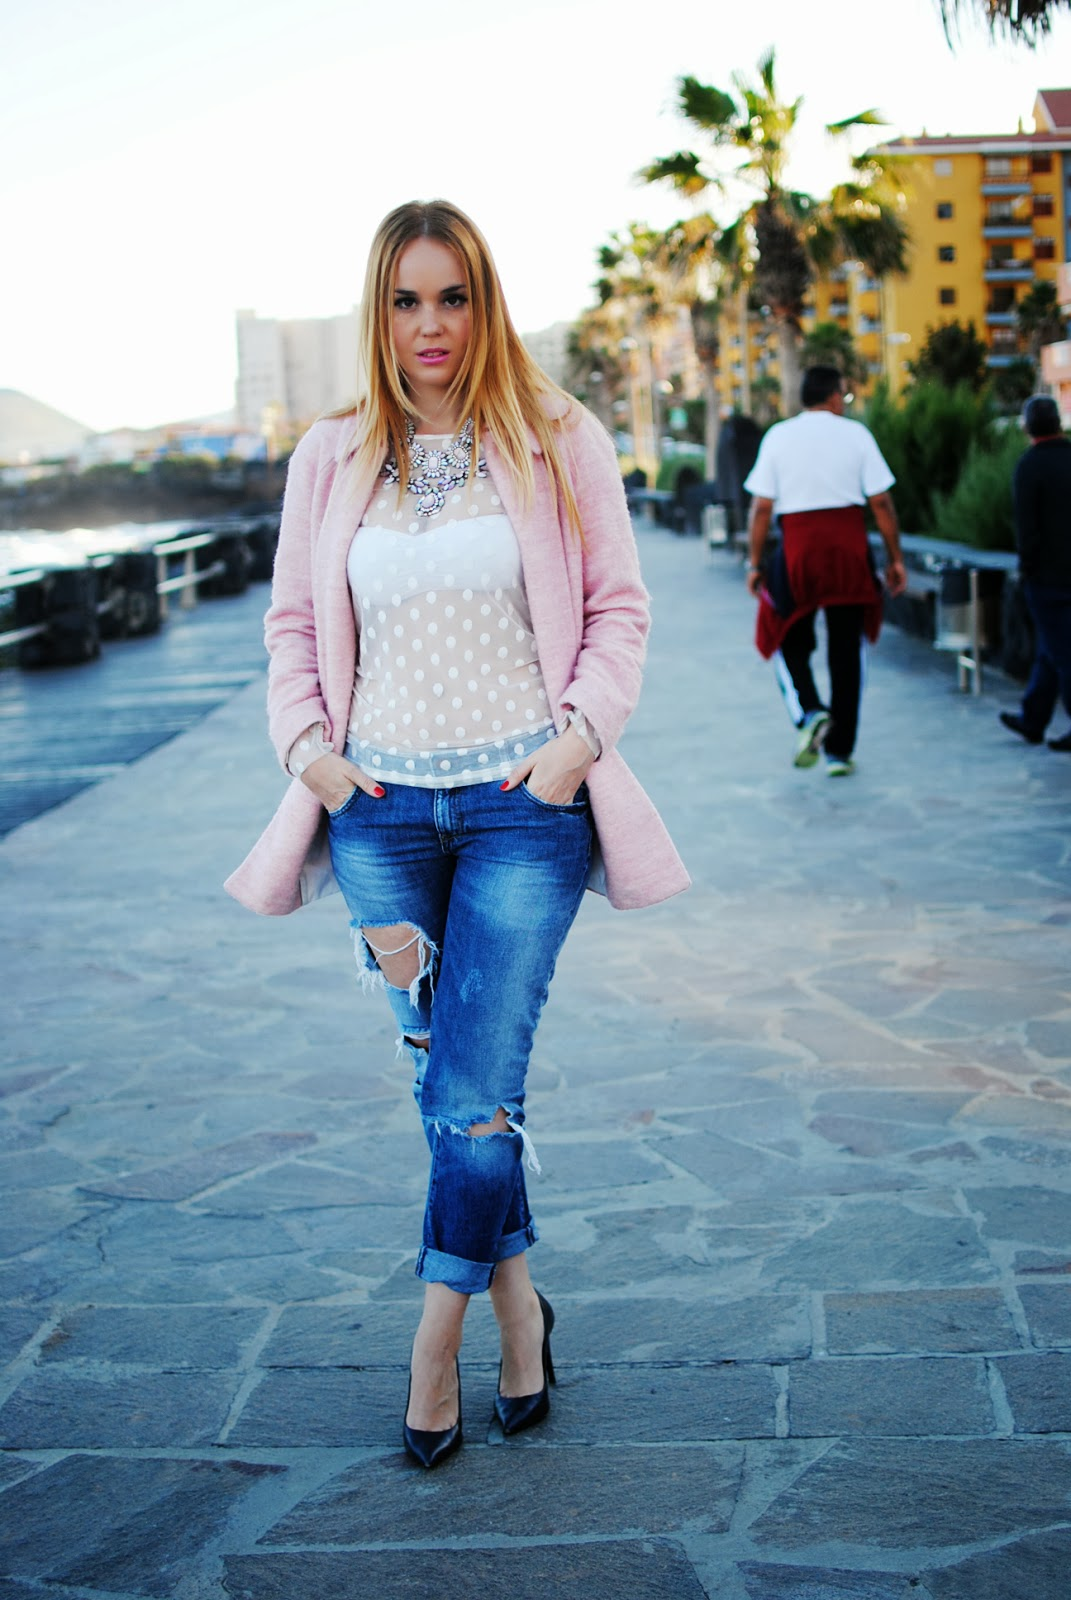 nery hdez, candy coat, polka dots, blonde , boyfriend jeans,  camisa transparente